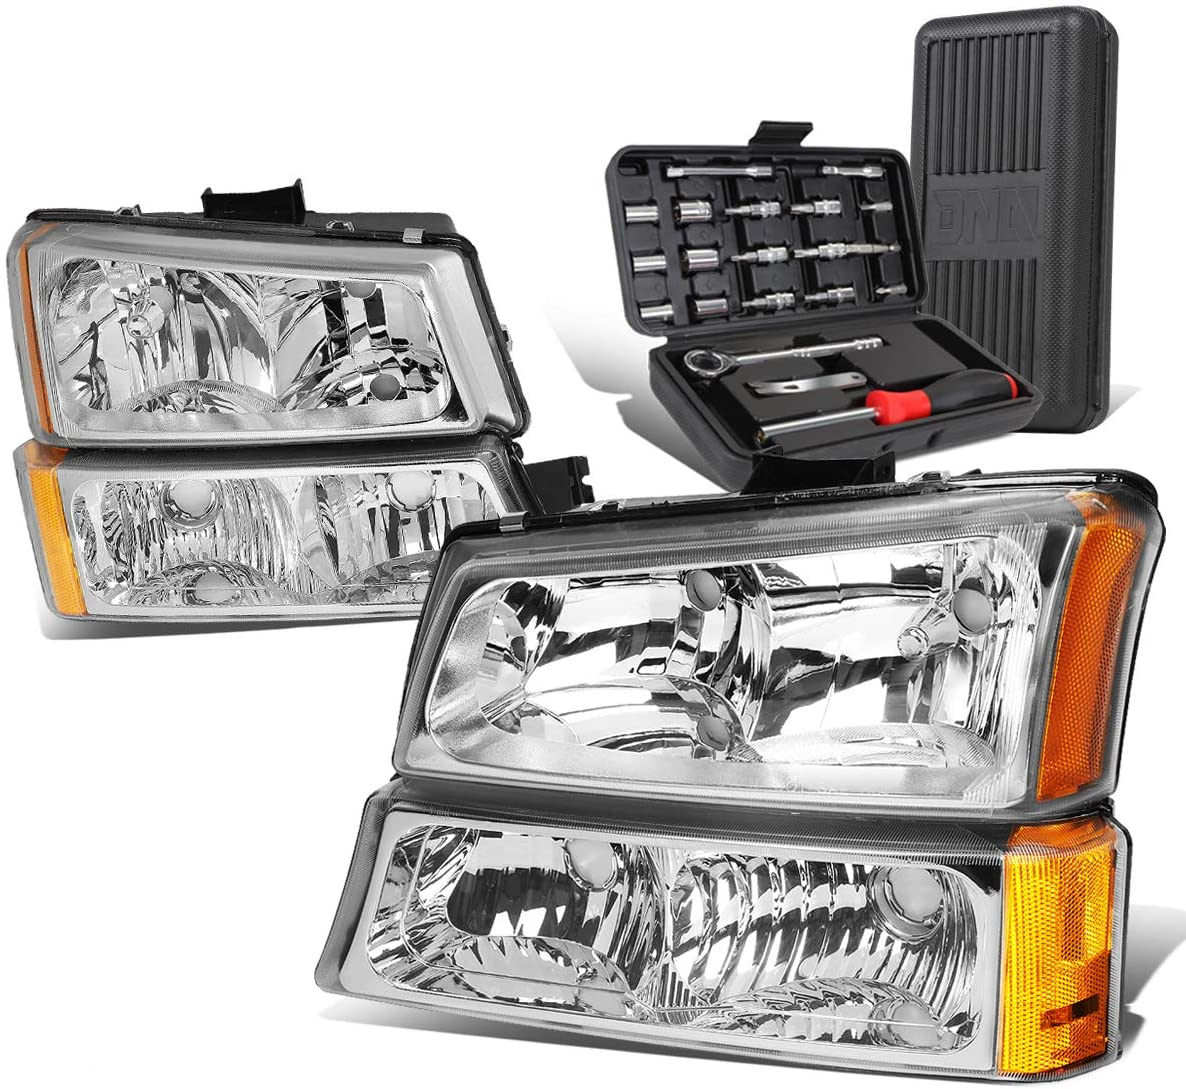 Chrome Amber Side Headlight+Bumper Lamps+Tool Kit Replacement for Chevy Avalanche Silverado 03-07 w/o Factory Cladding